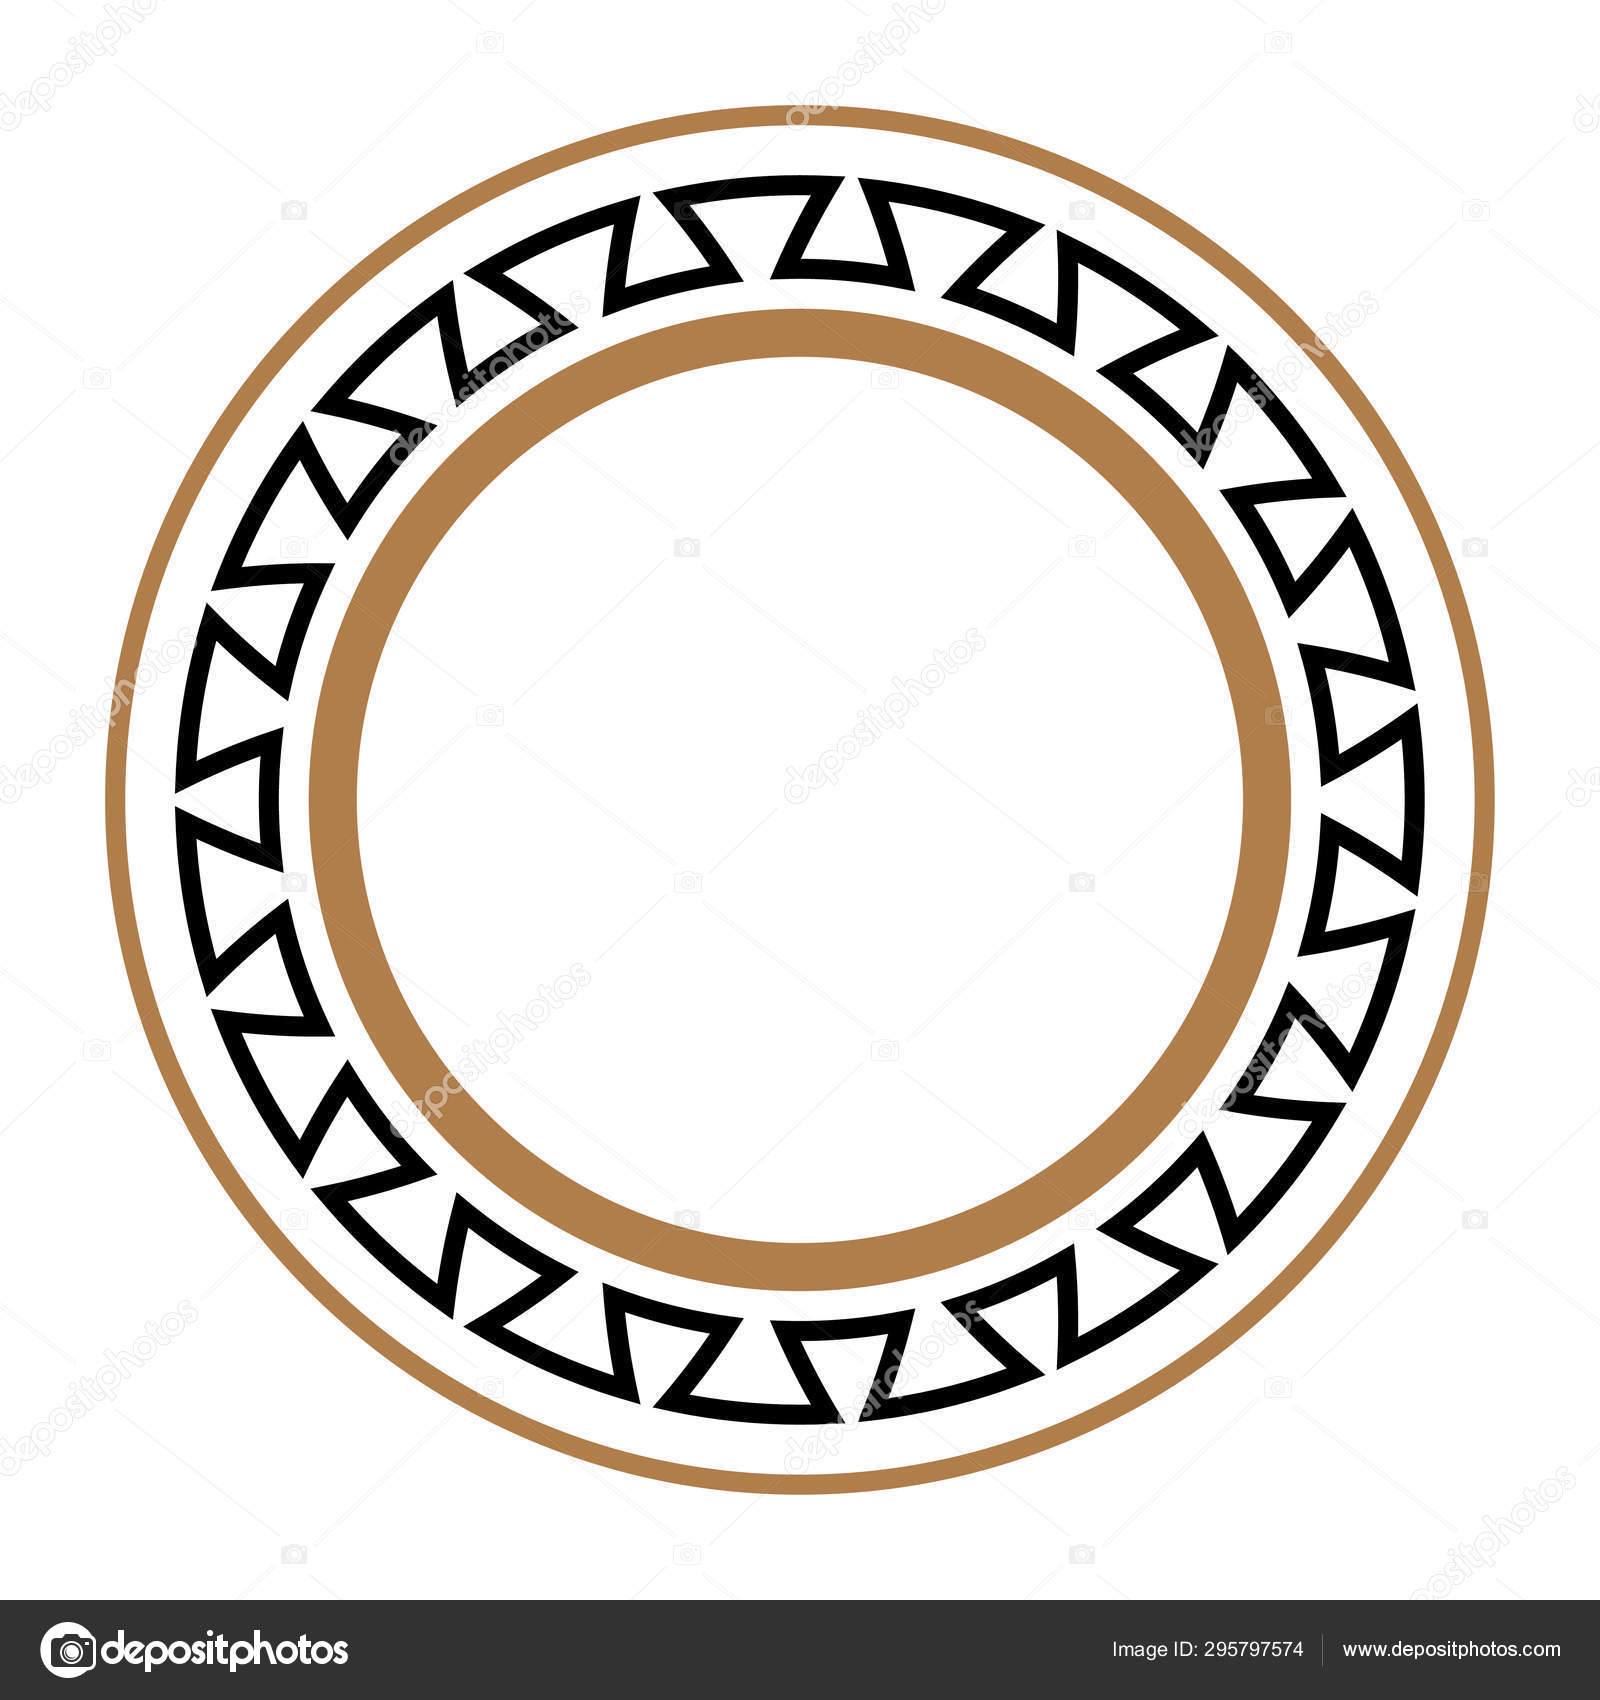 Greek Key Round Frame. Typical Egyptian, Assyrian And Greek Motives..  Royalty Free Cliparts, Vectors, And Stock Illustration. Image 119493323.